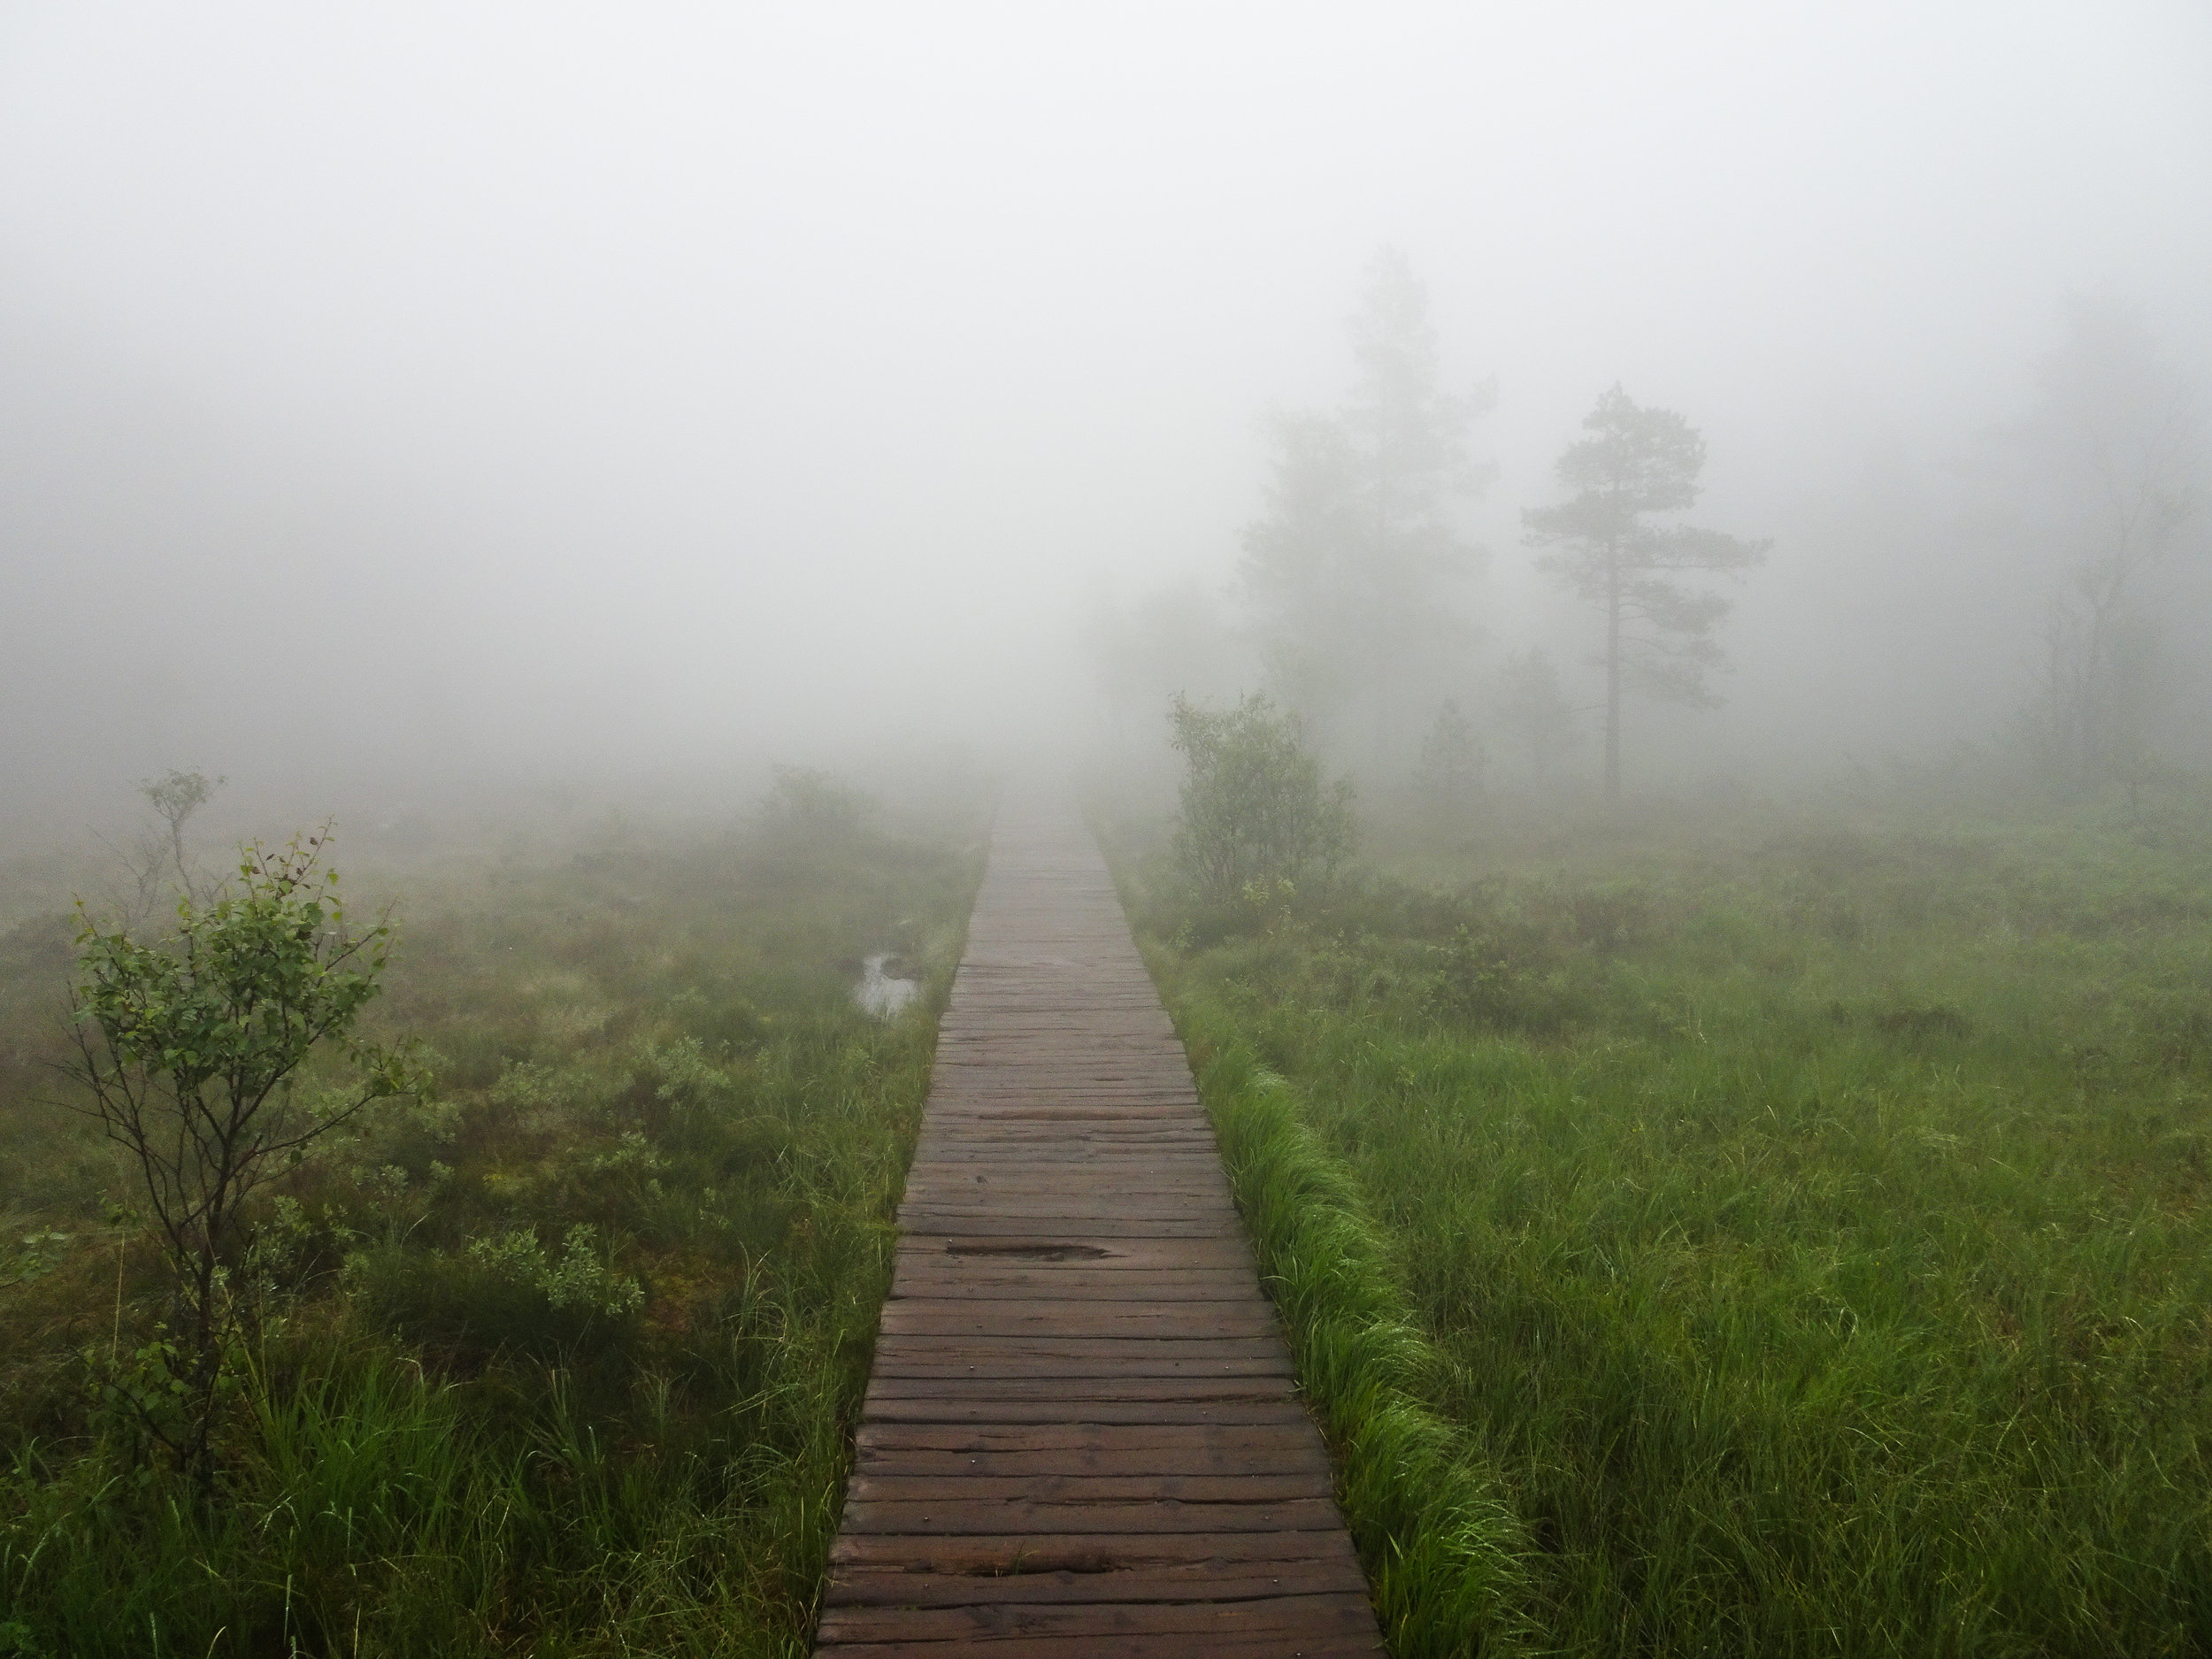 Keep in mind: The entire trail can be super slippery in weather like this!